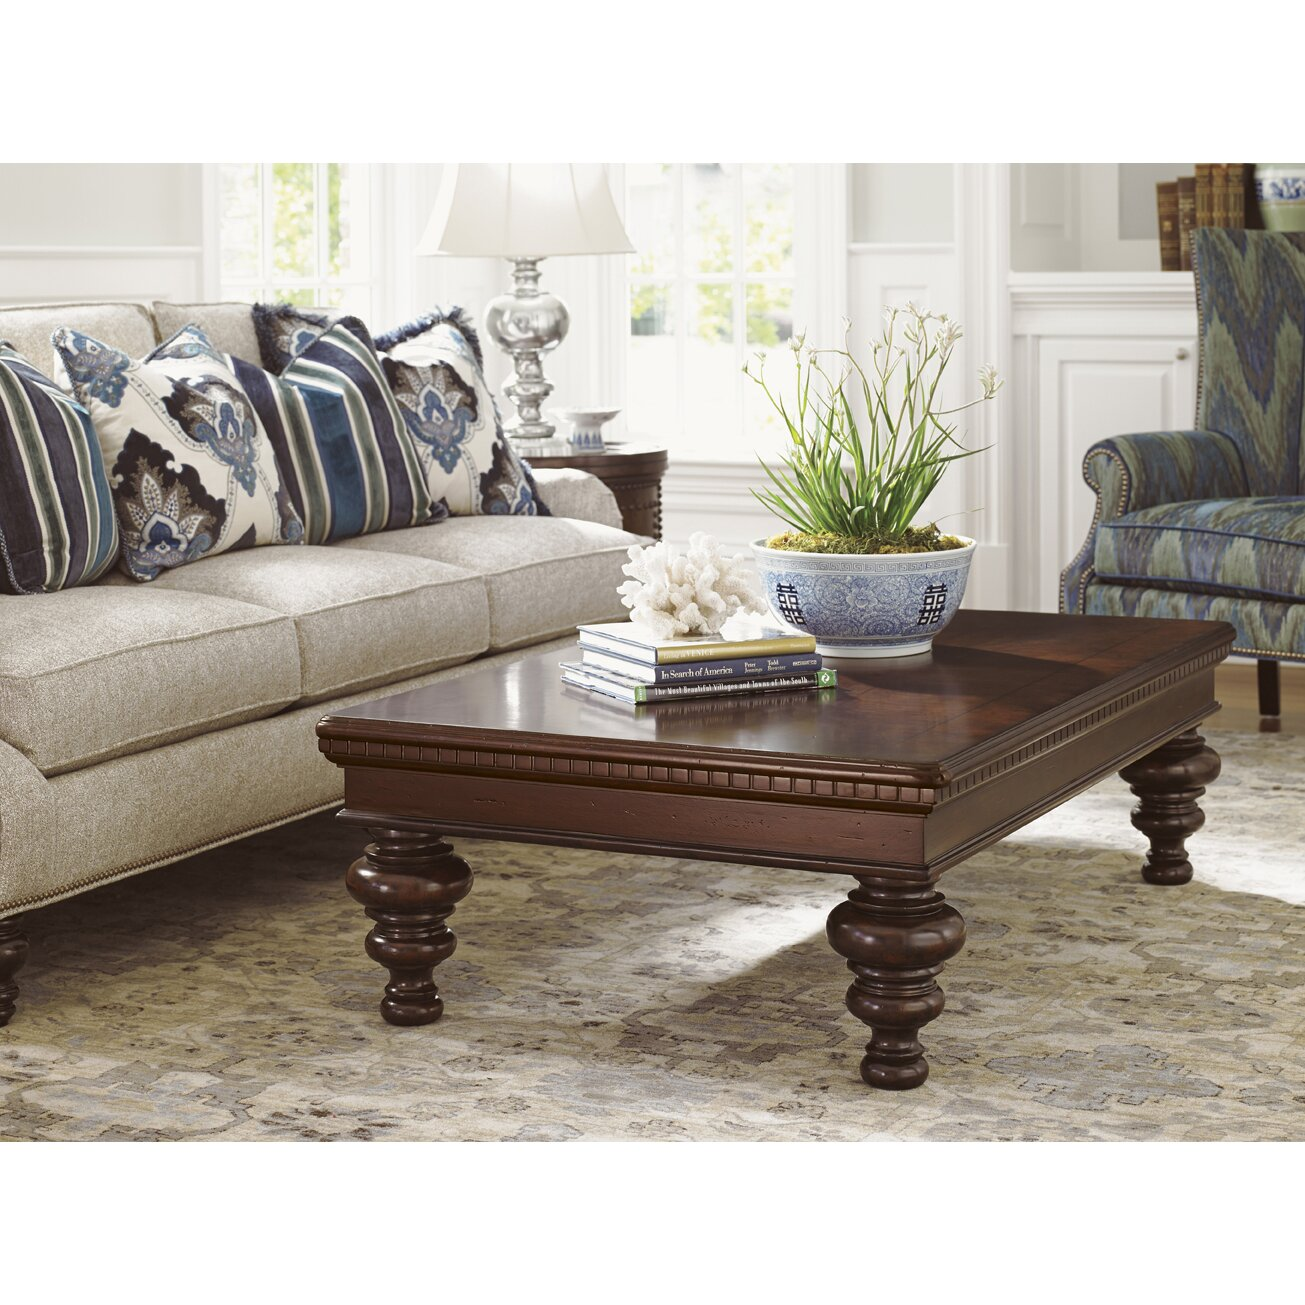 Lexington Kilimanjaro Coffee Table Reviews Wayfair